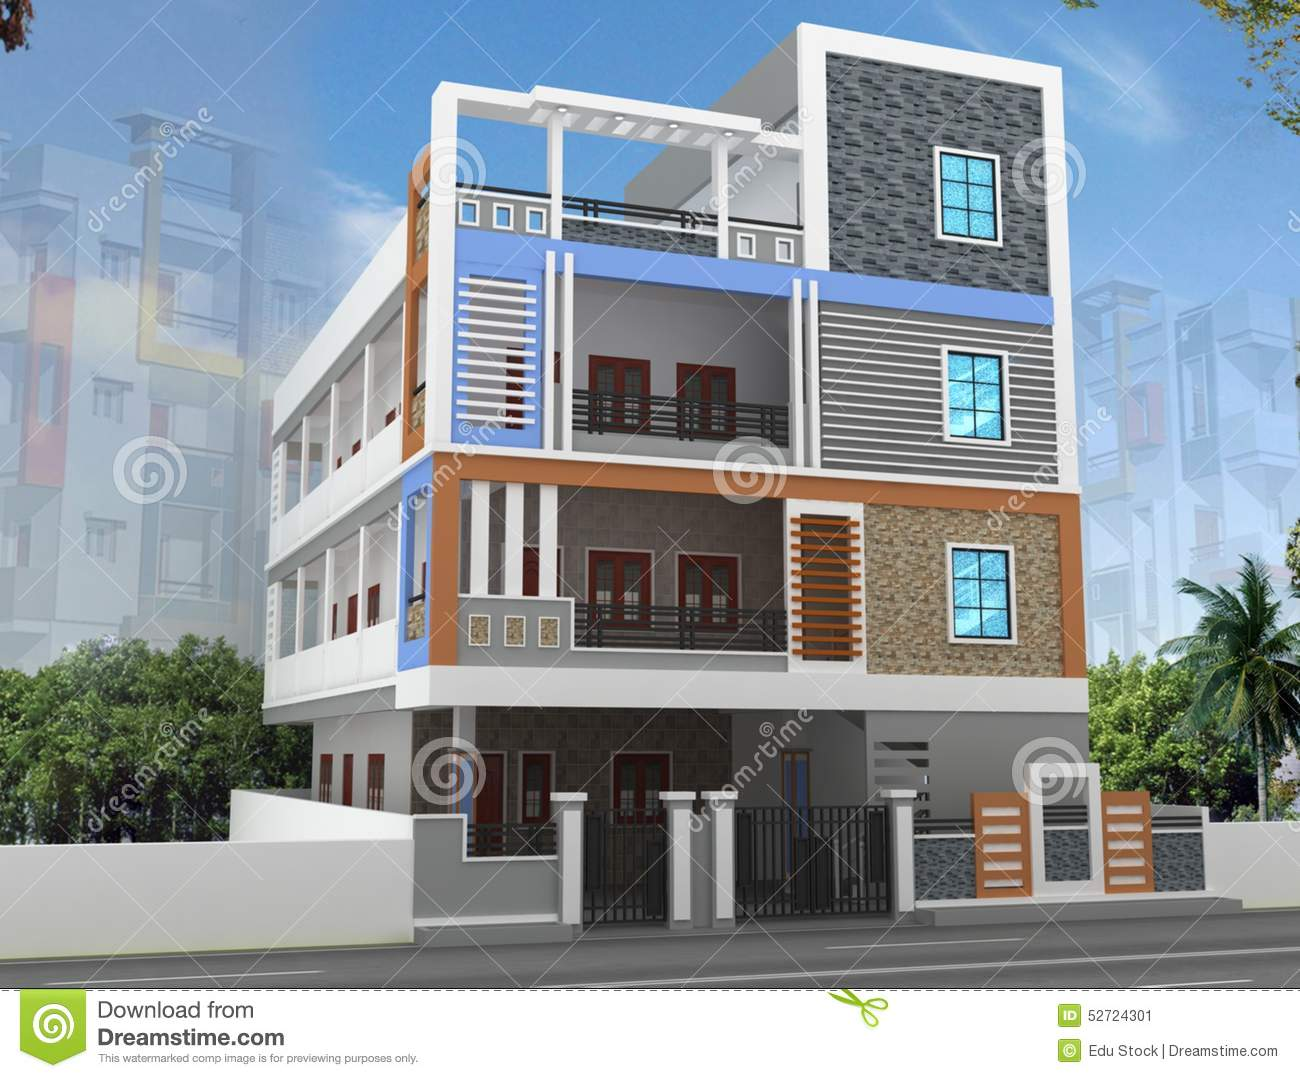 28+ [ 3d building design ] | 3d apartment building elevation done